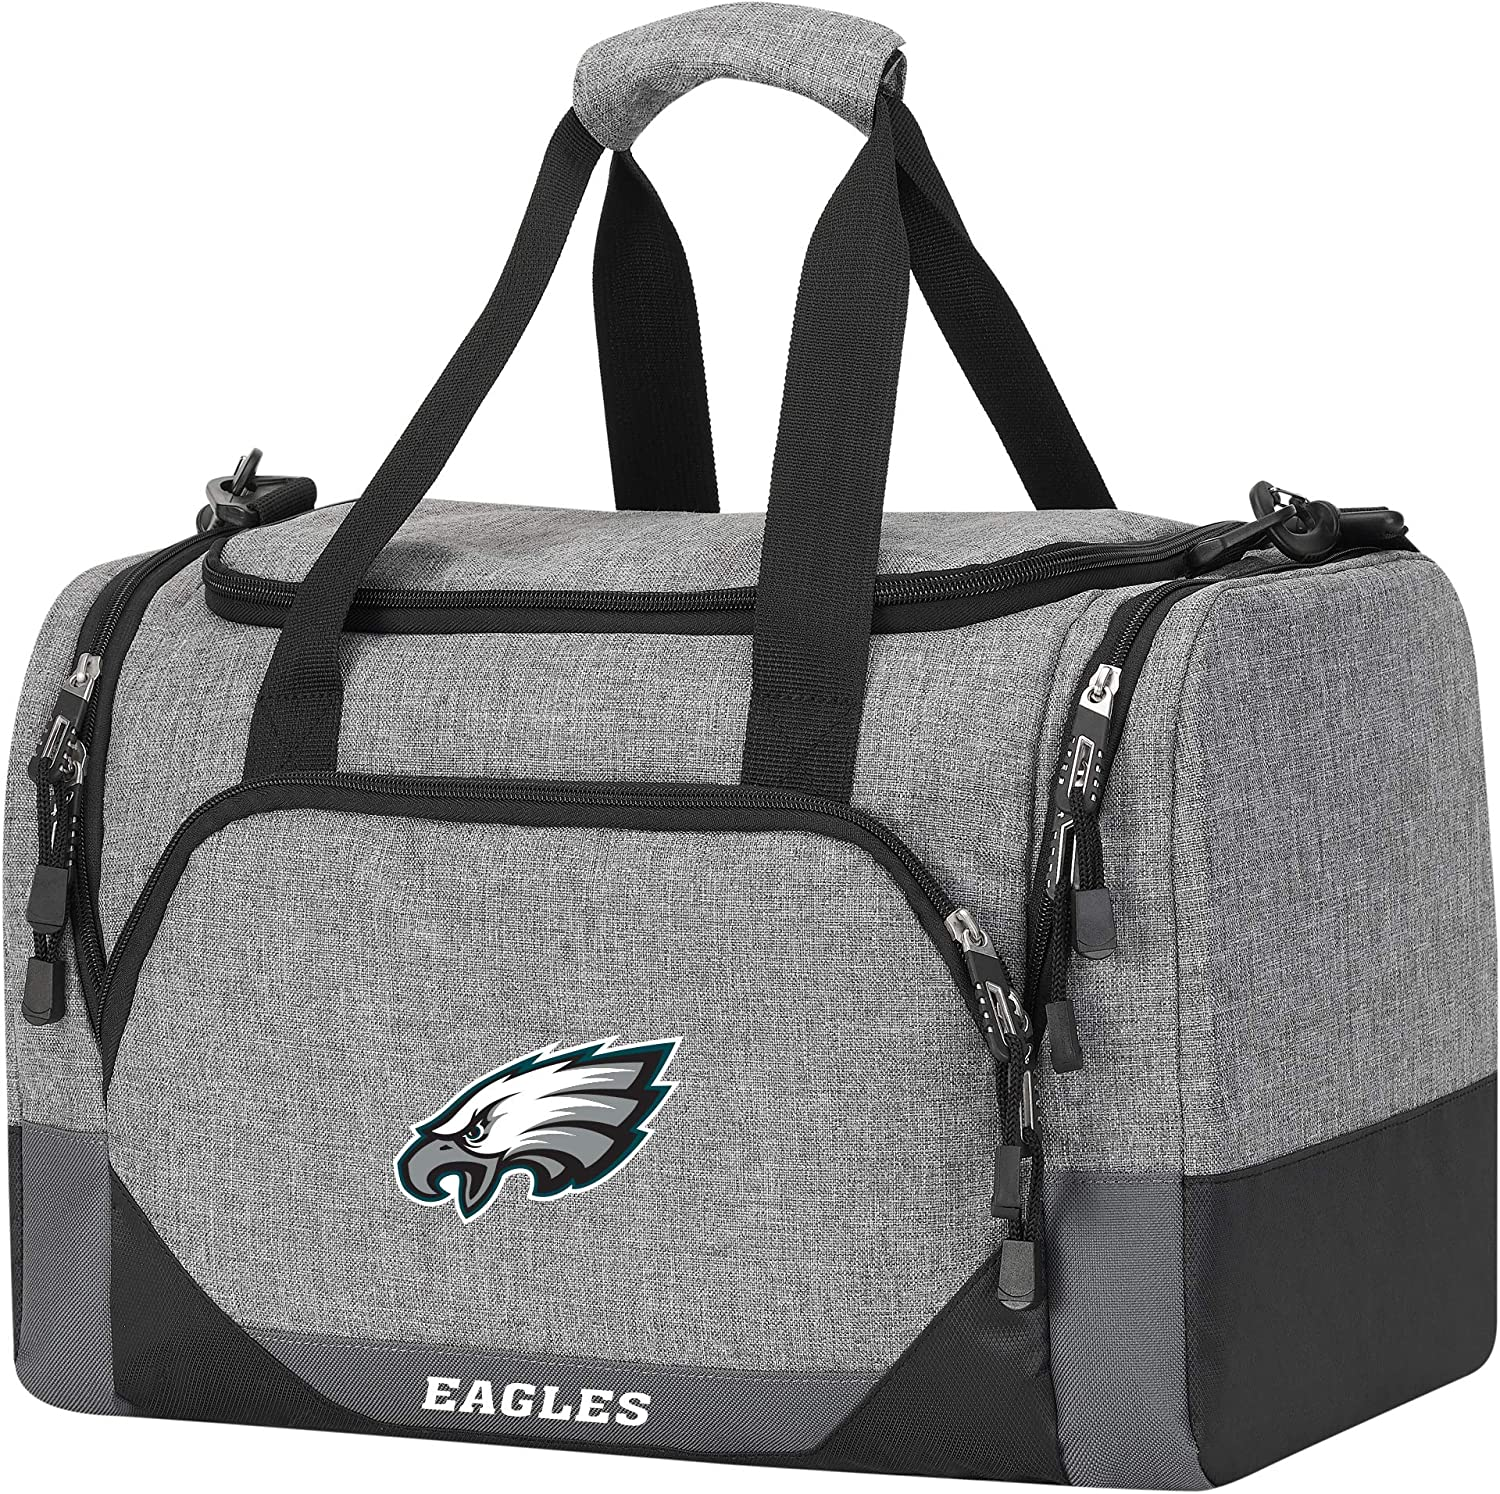 Grey Officially Licensed NFL Terrain Duffel 18 x 11 x 11 inches